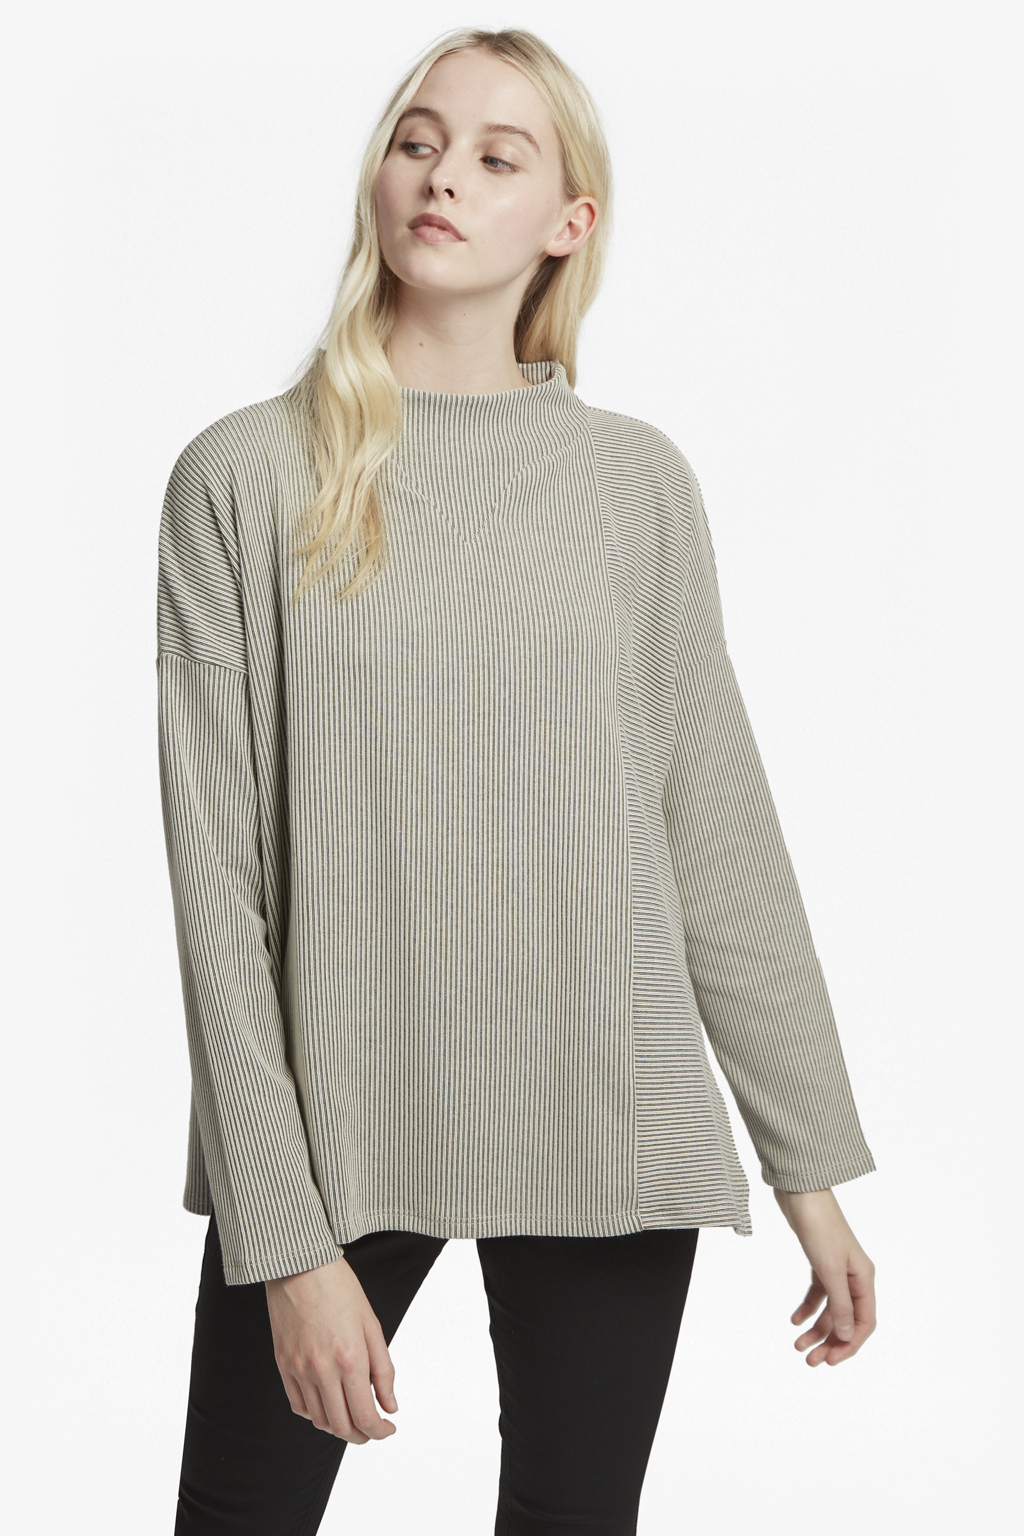 French Connection Sario Rib Jersey Top Cheap Sale Store IwYvJTt